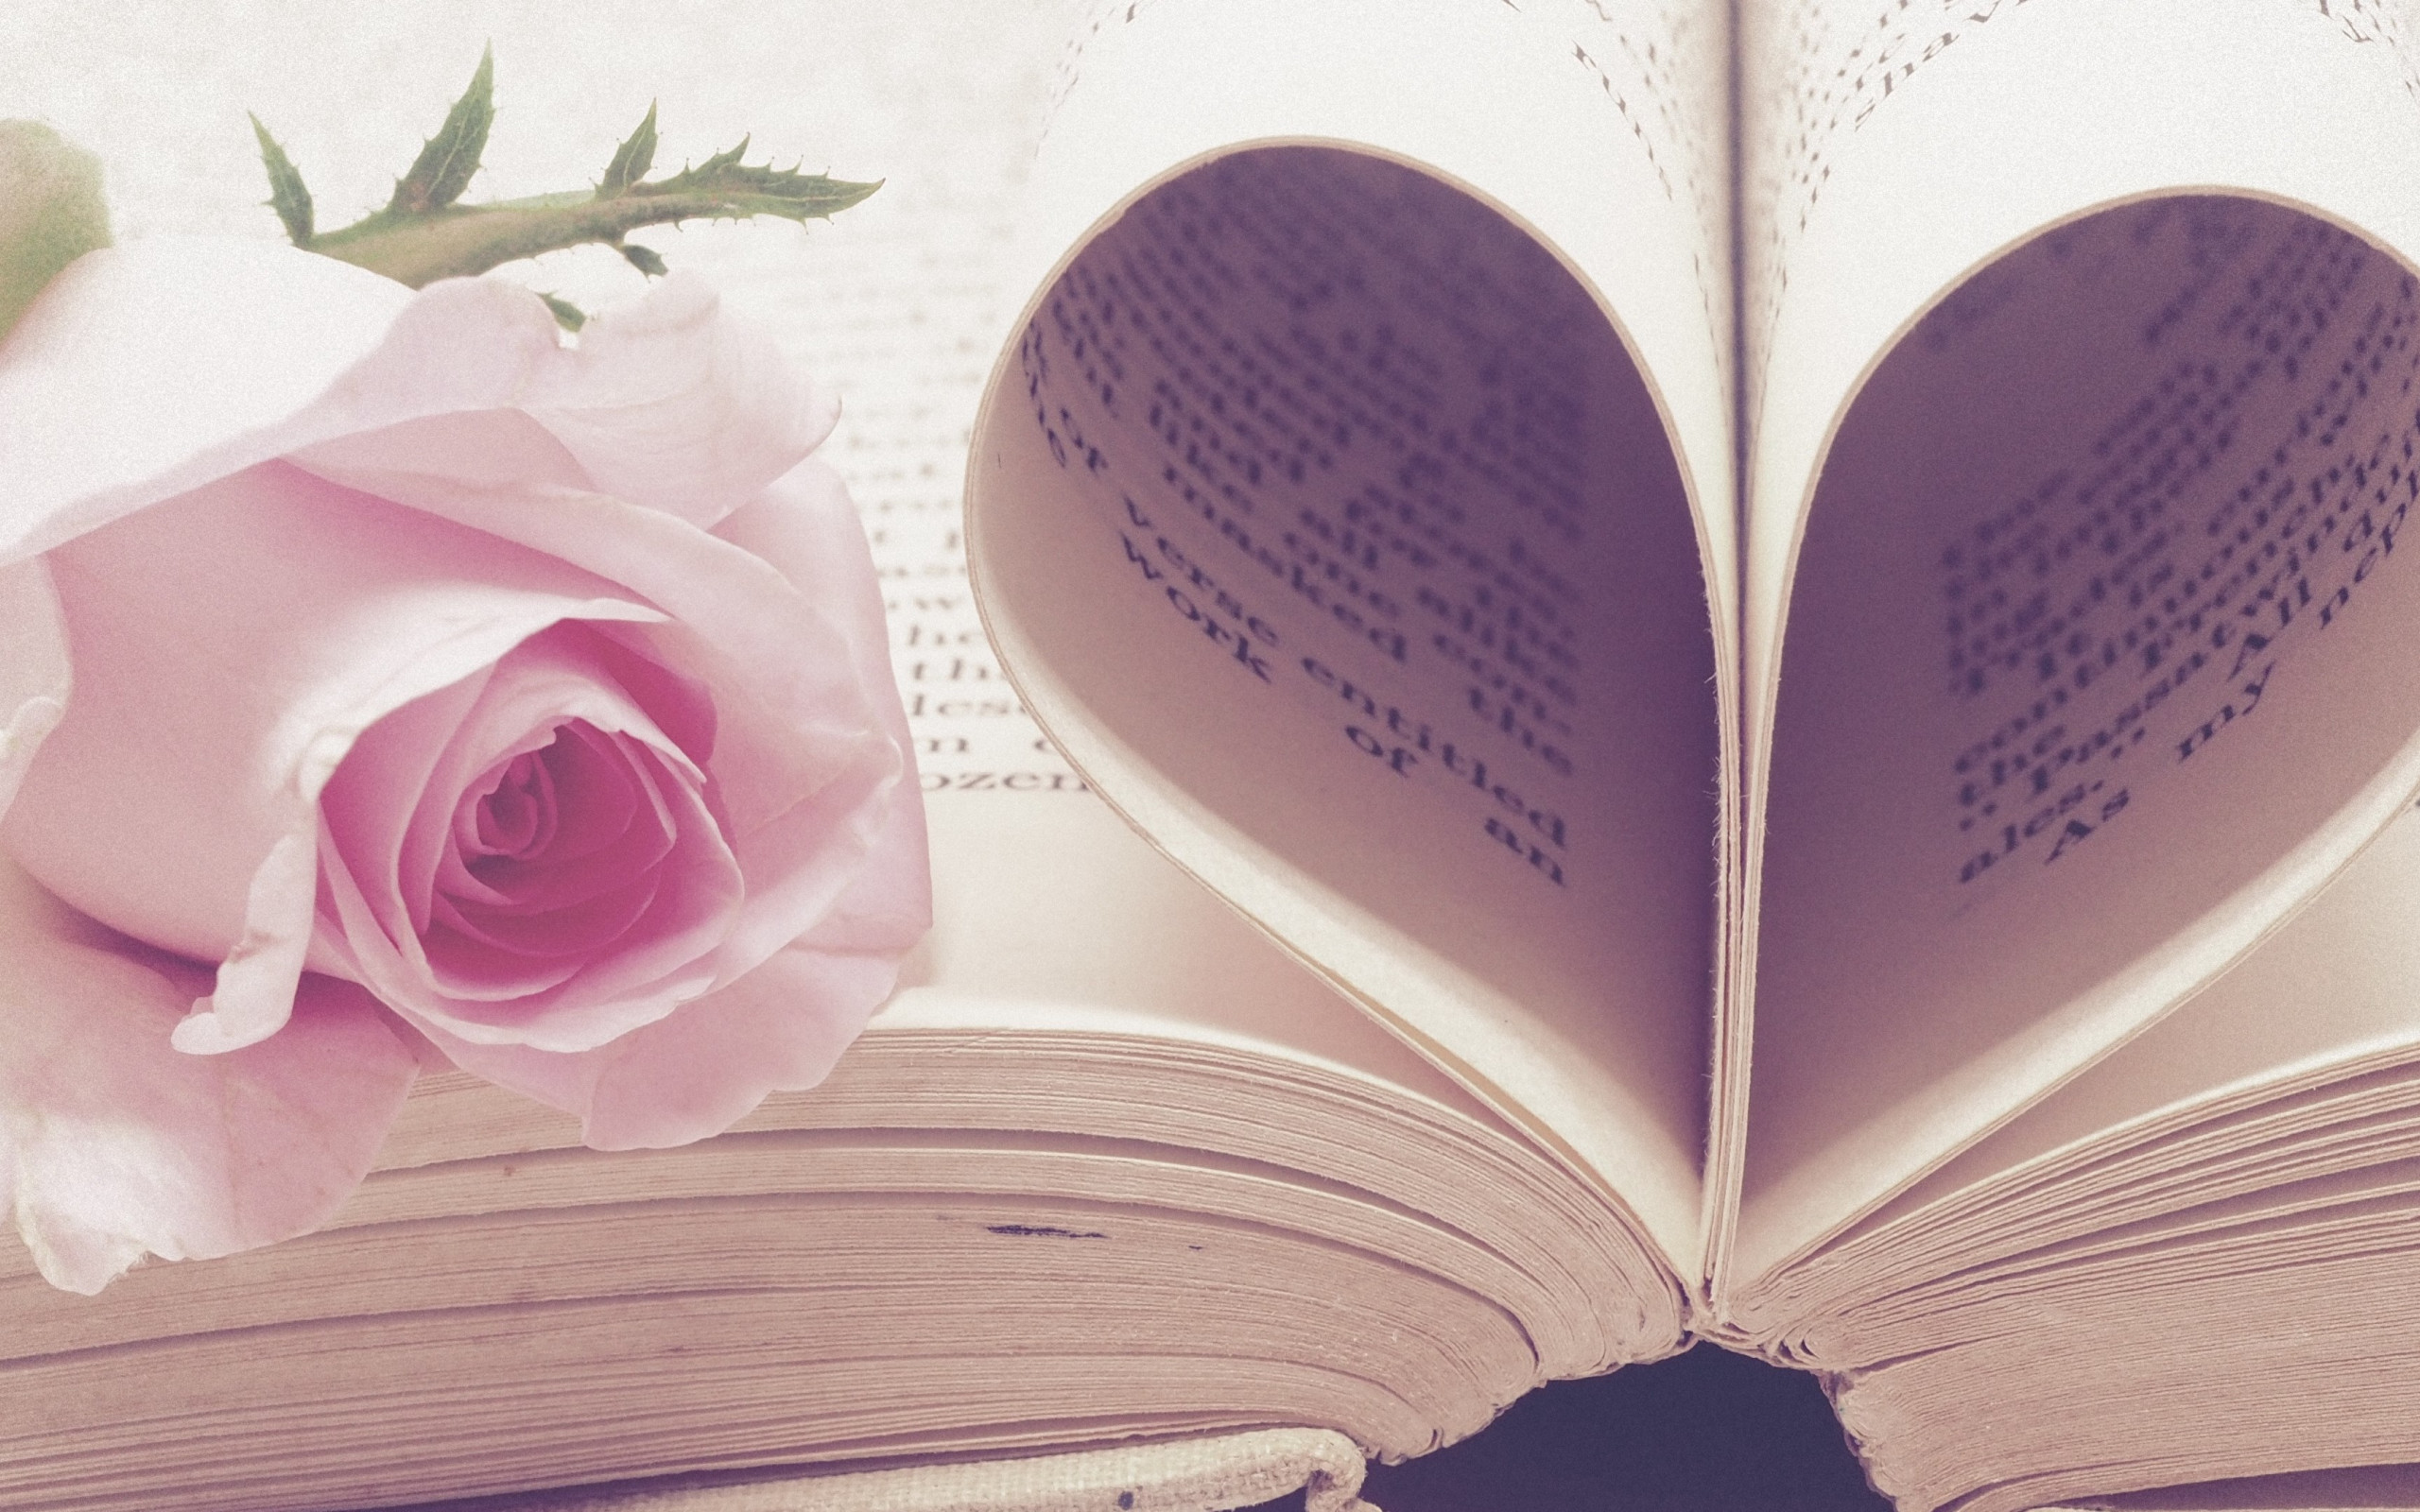 Rose flower and love book wallpaper 2560x1600